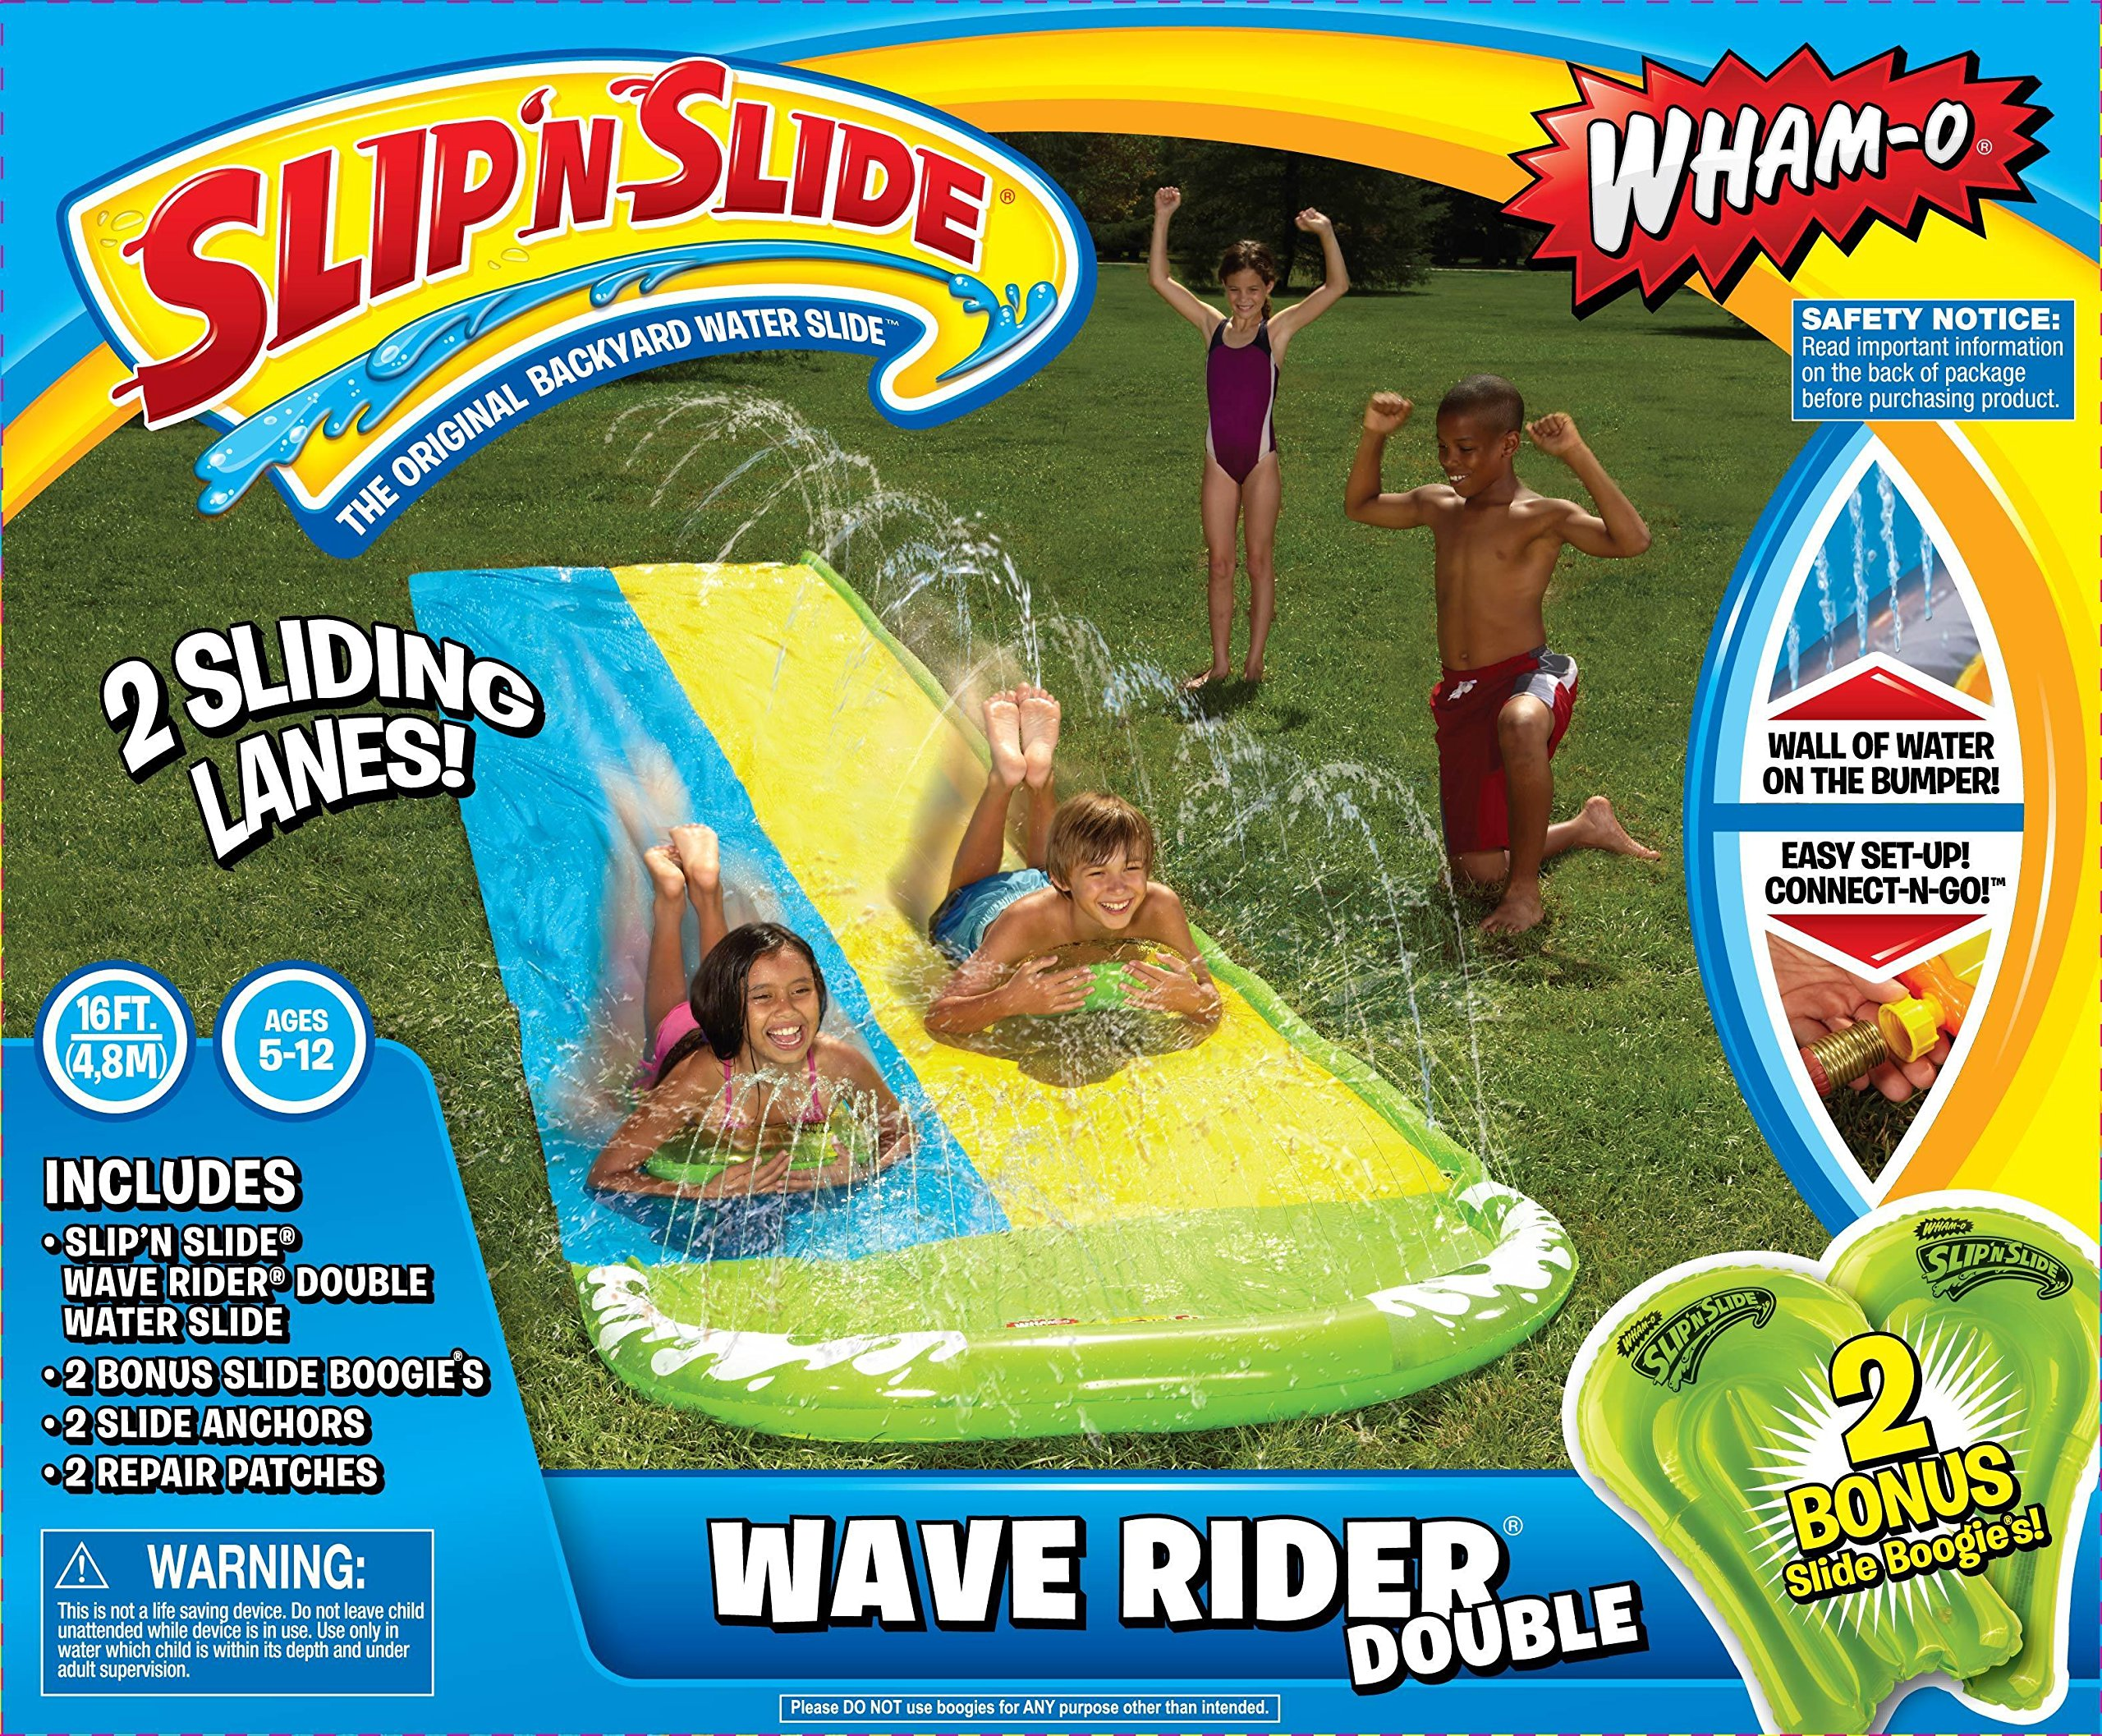 Wham-O Slip N Slide Wave Rider Double with 2 Slide Boogies by Wham-O